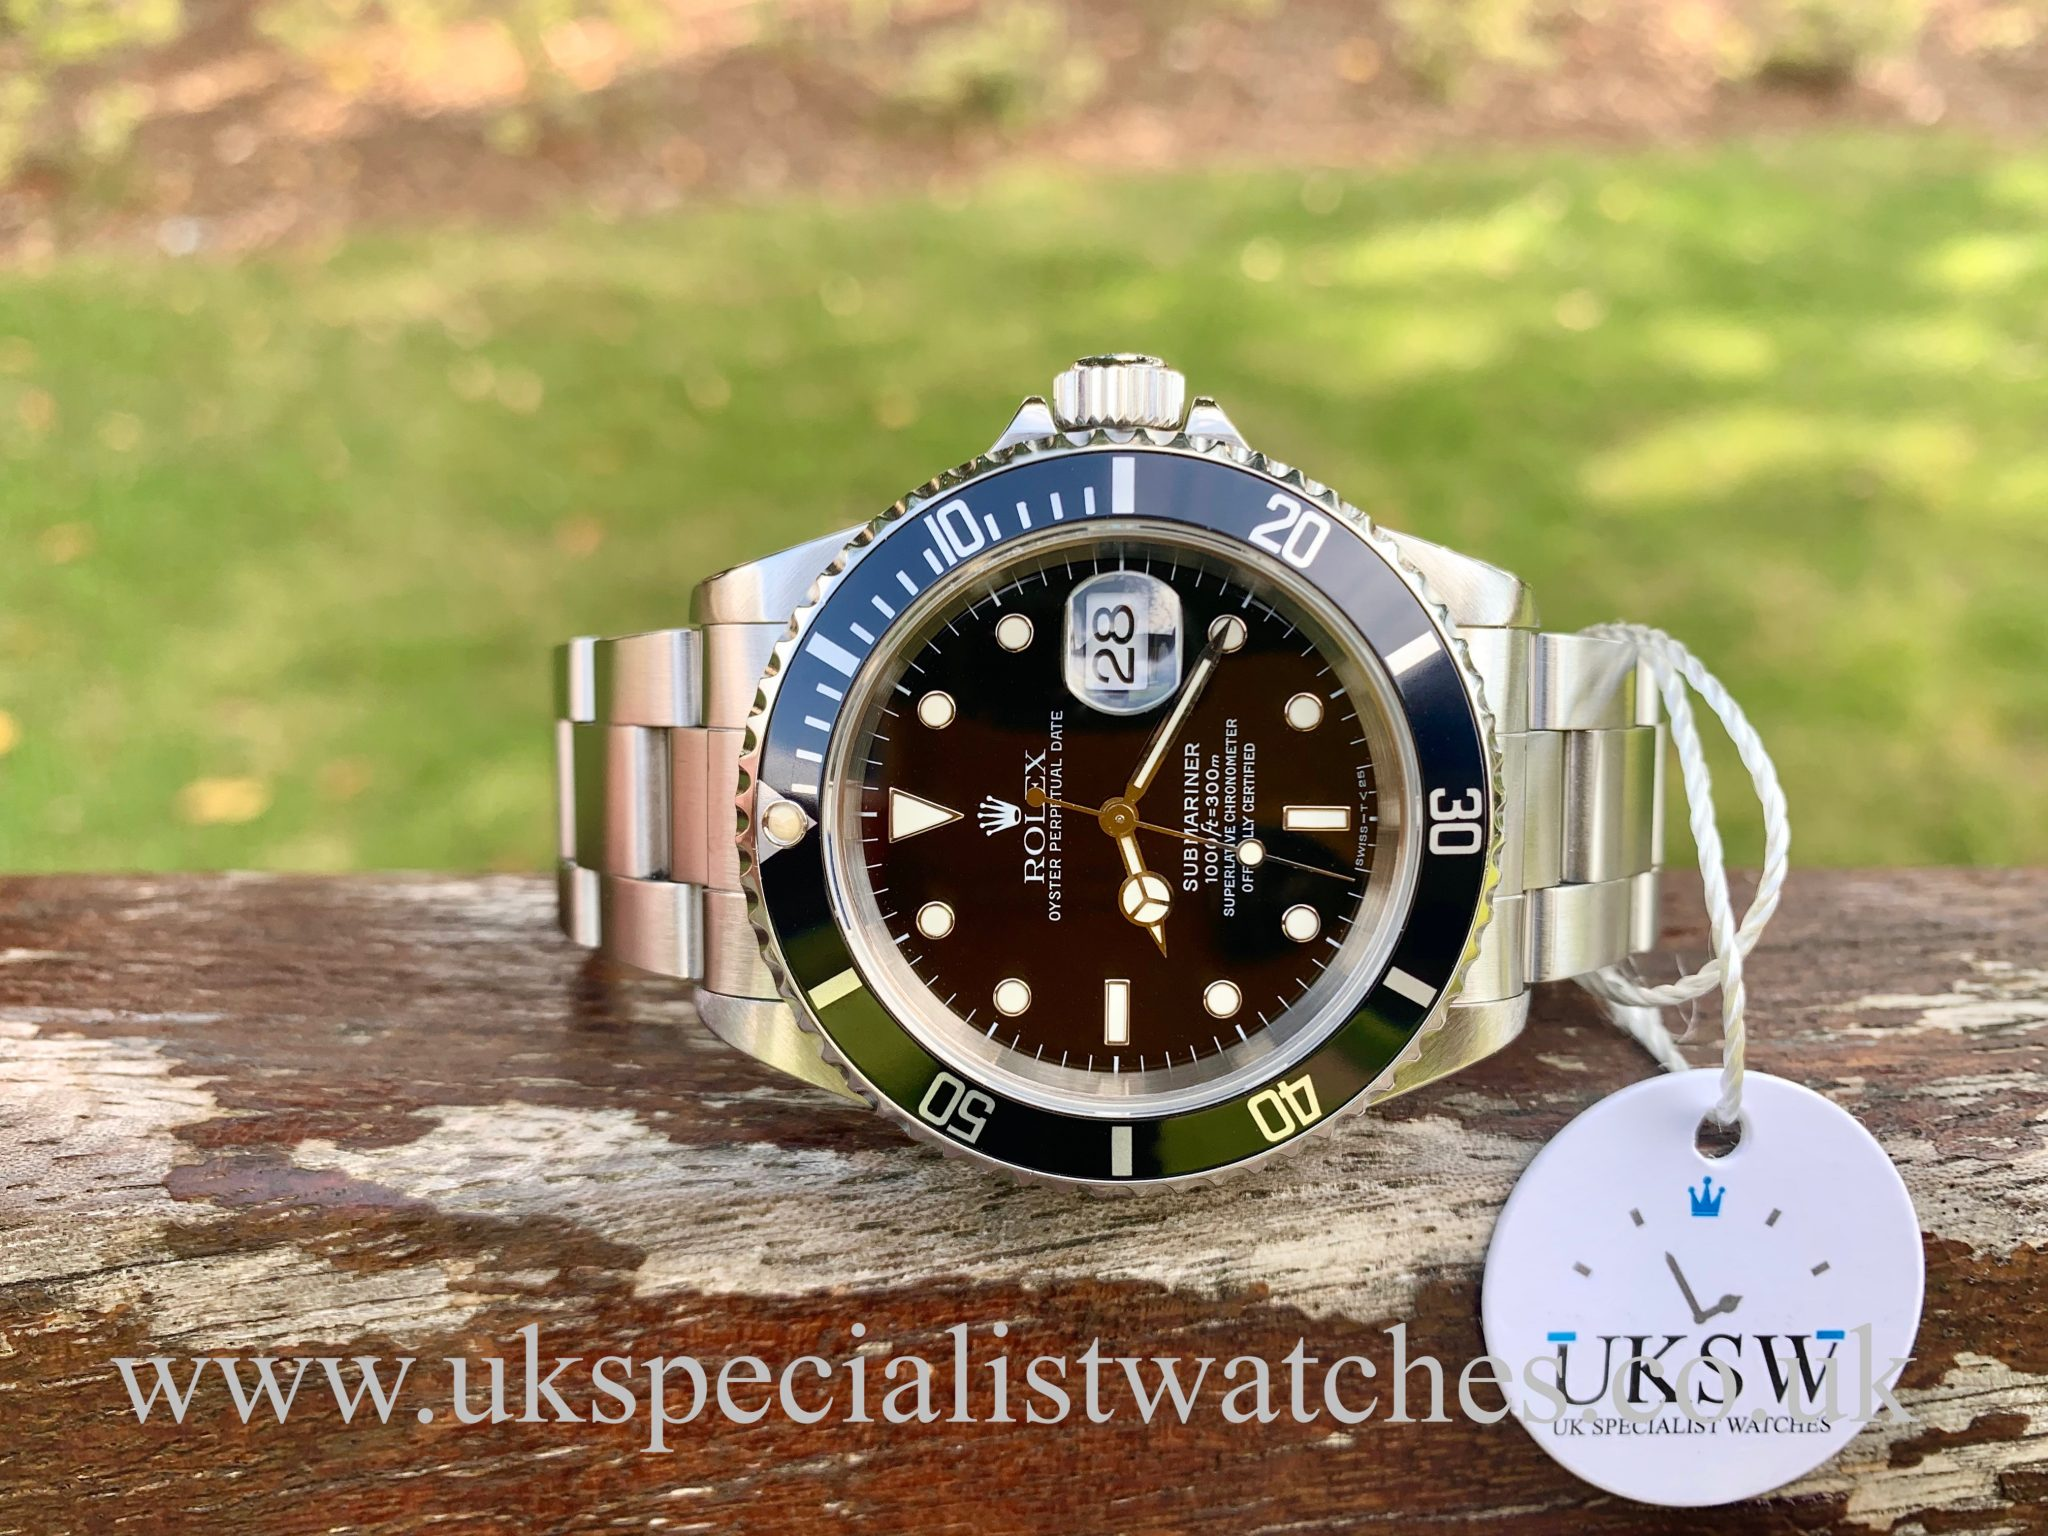 ROLEX SUBMARINER DATE - 16610  - SWISS T25 DIAL - FINAL EDITION 1998